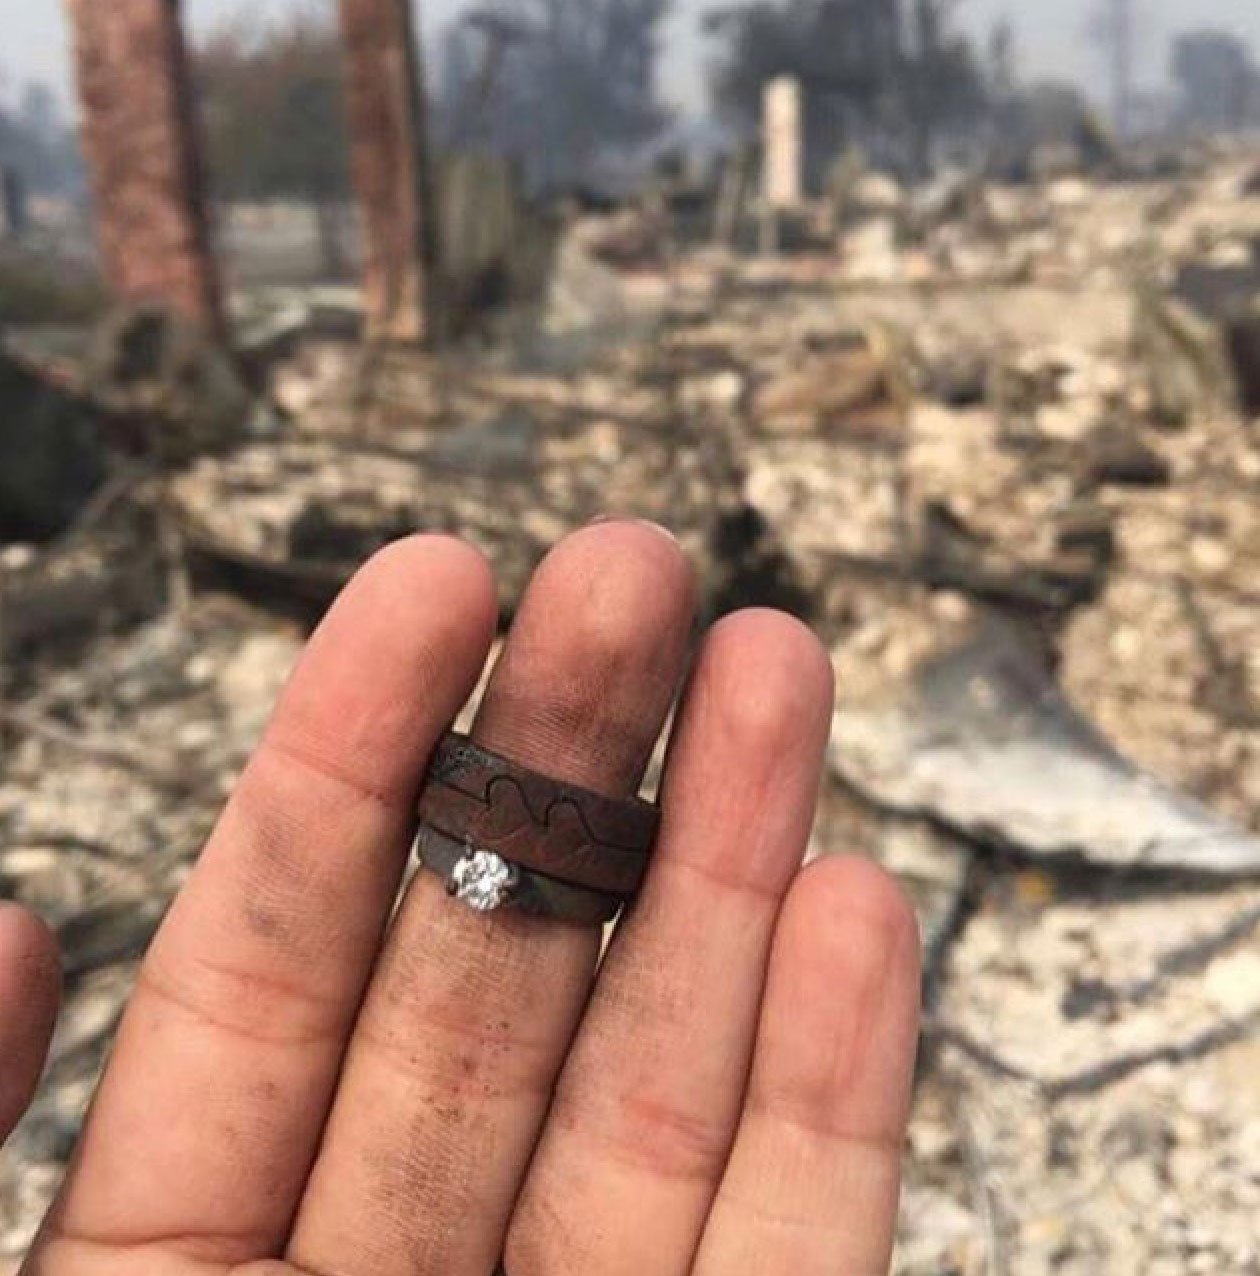 <div class='meta'><div class='origin-logo' data-origin='none'></div><span class='caption-text' data-credit='djgraystone/Instagram'>These rings were found in the rubble of a home, the person who took the photo said. It was captioned, ''Today, tomorrow, and everyday after that you need to love harder...''</span></div>